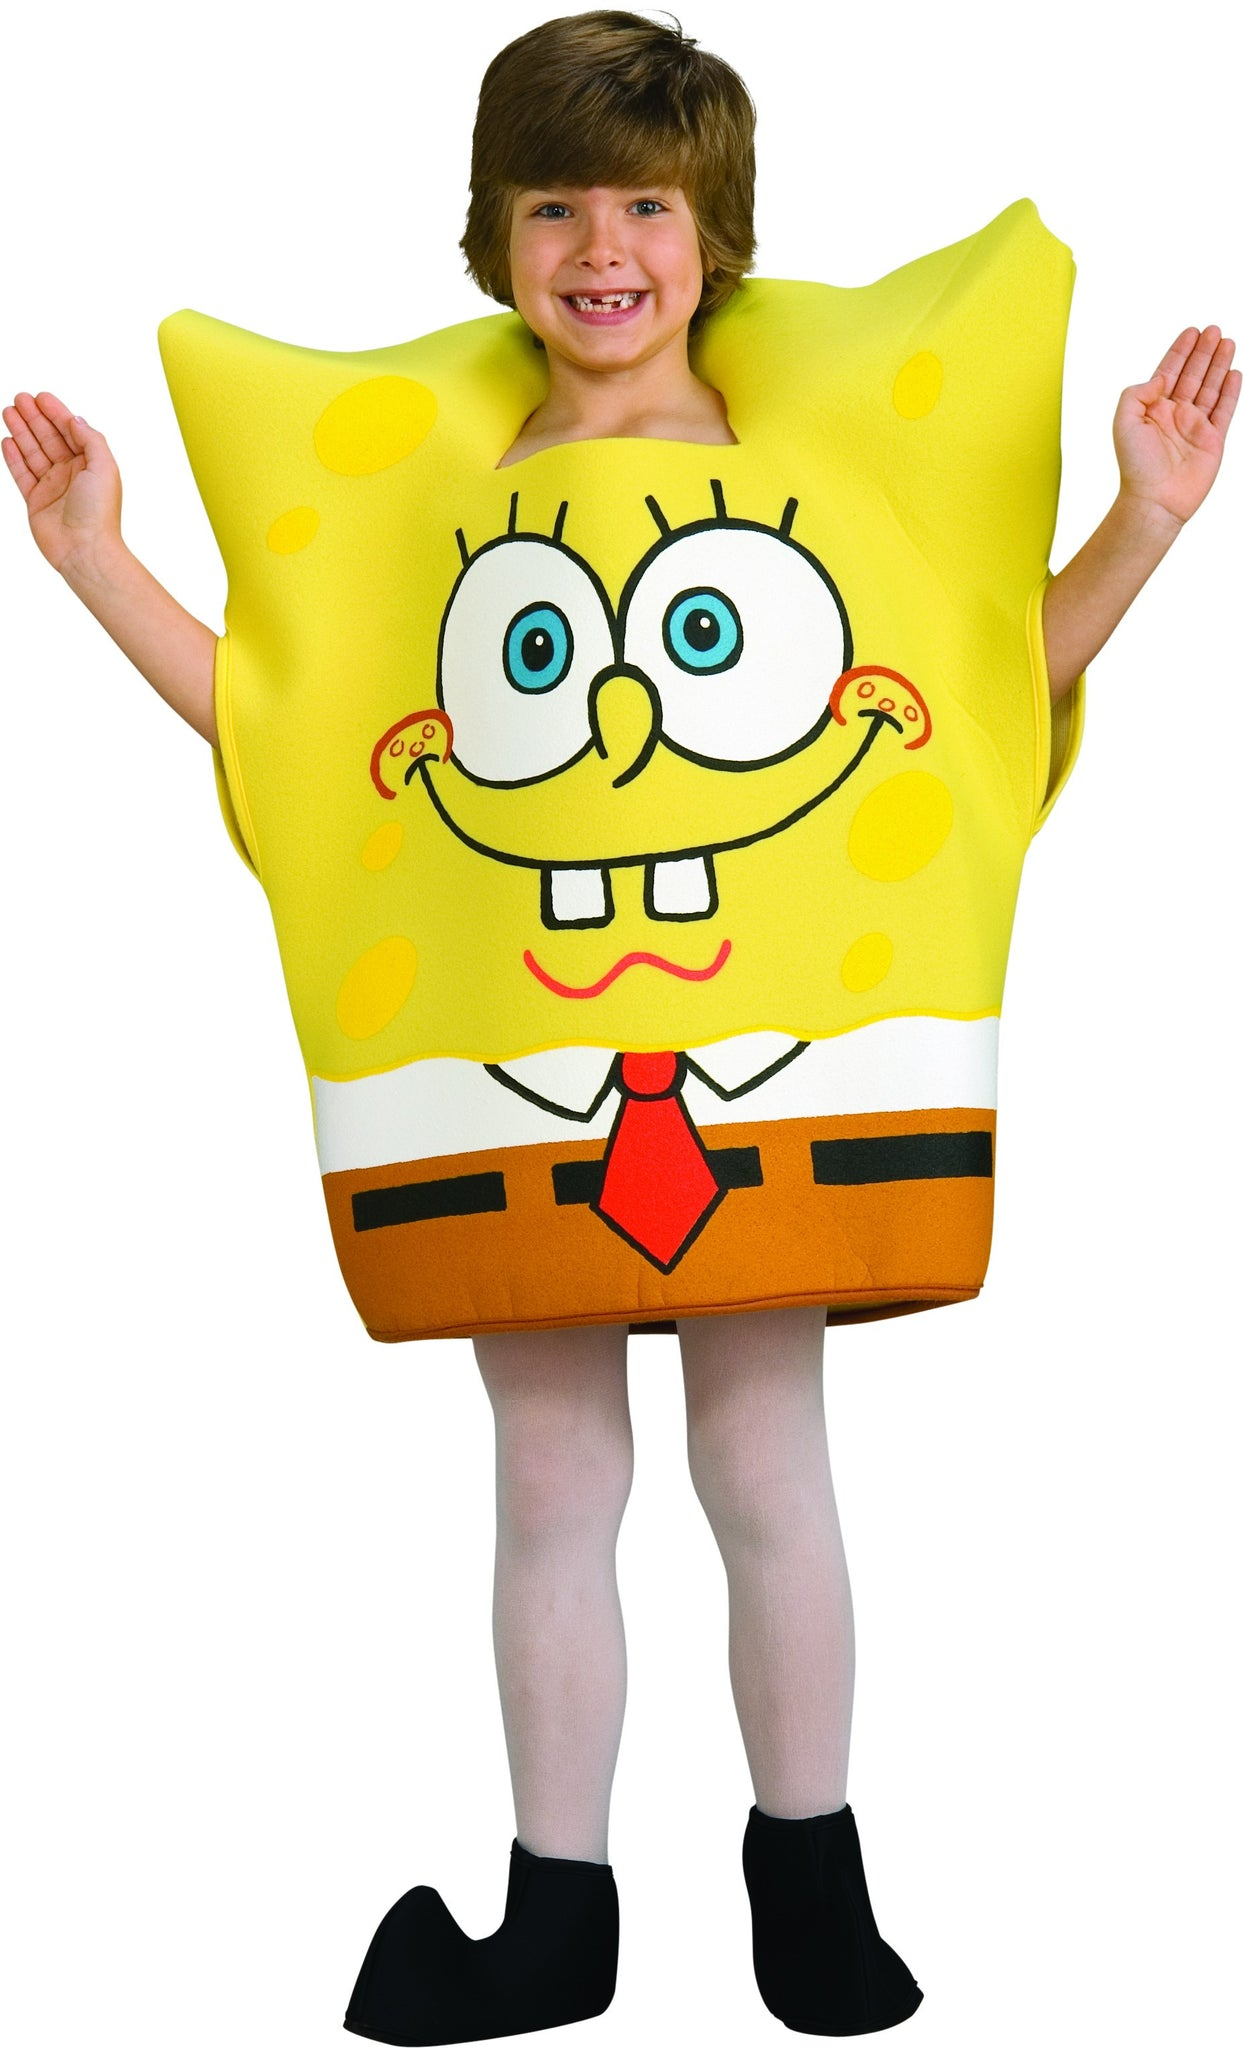 SPONGEBOB SQUAREPANTS FOAM COSTUME, CHILD - SIZE L